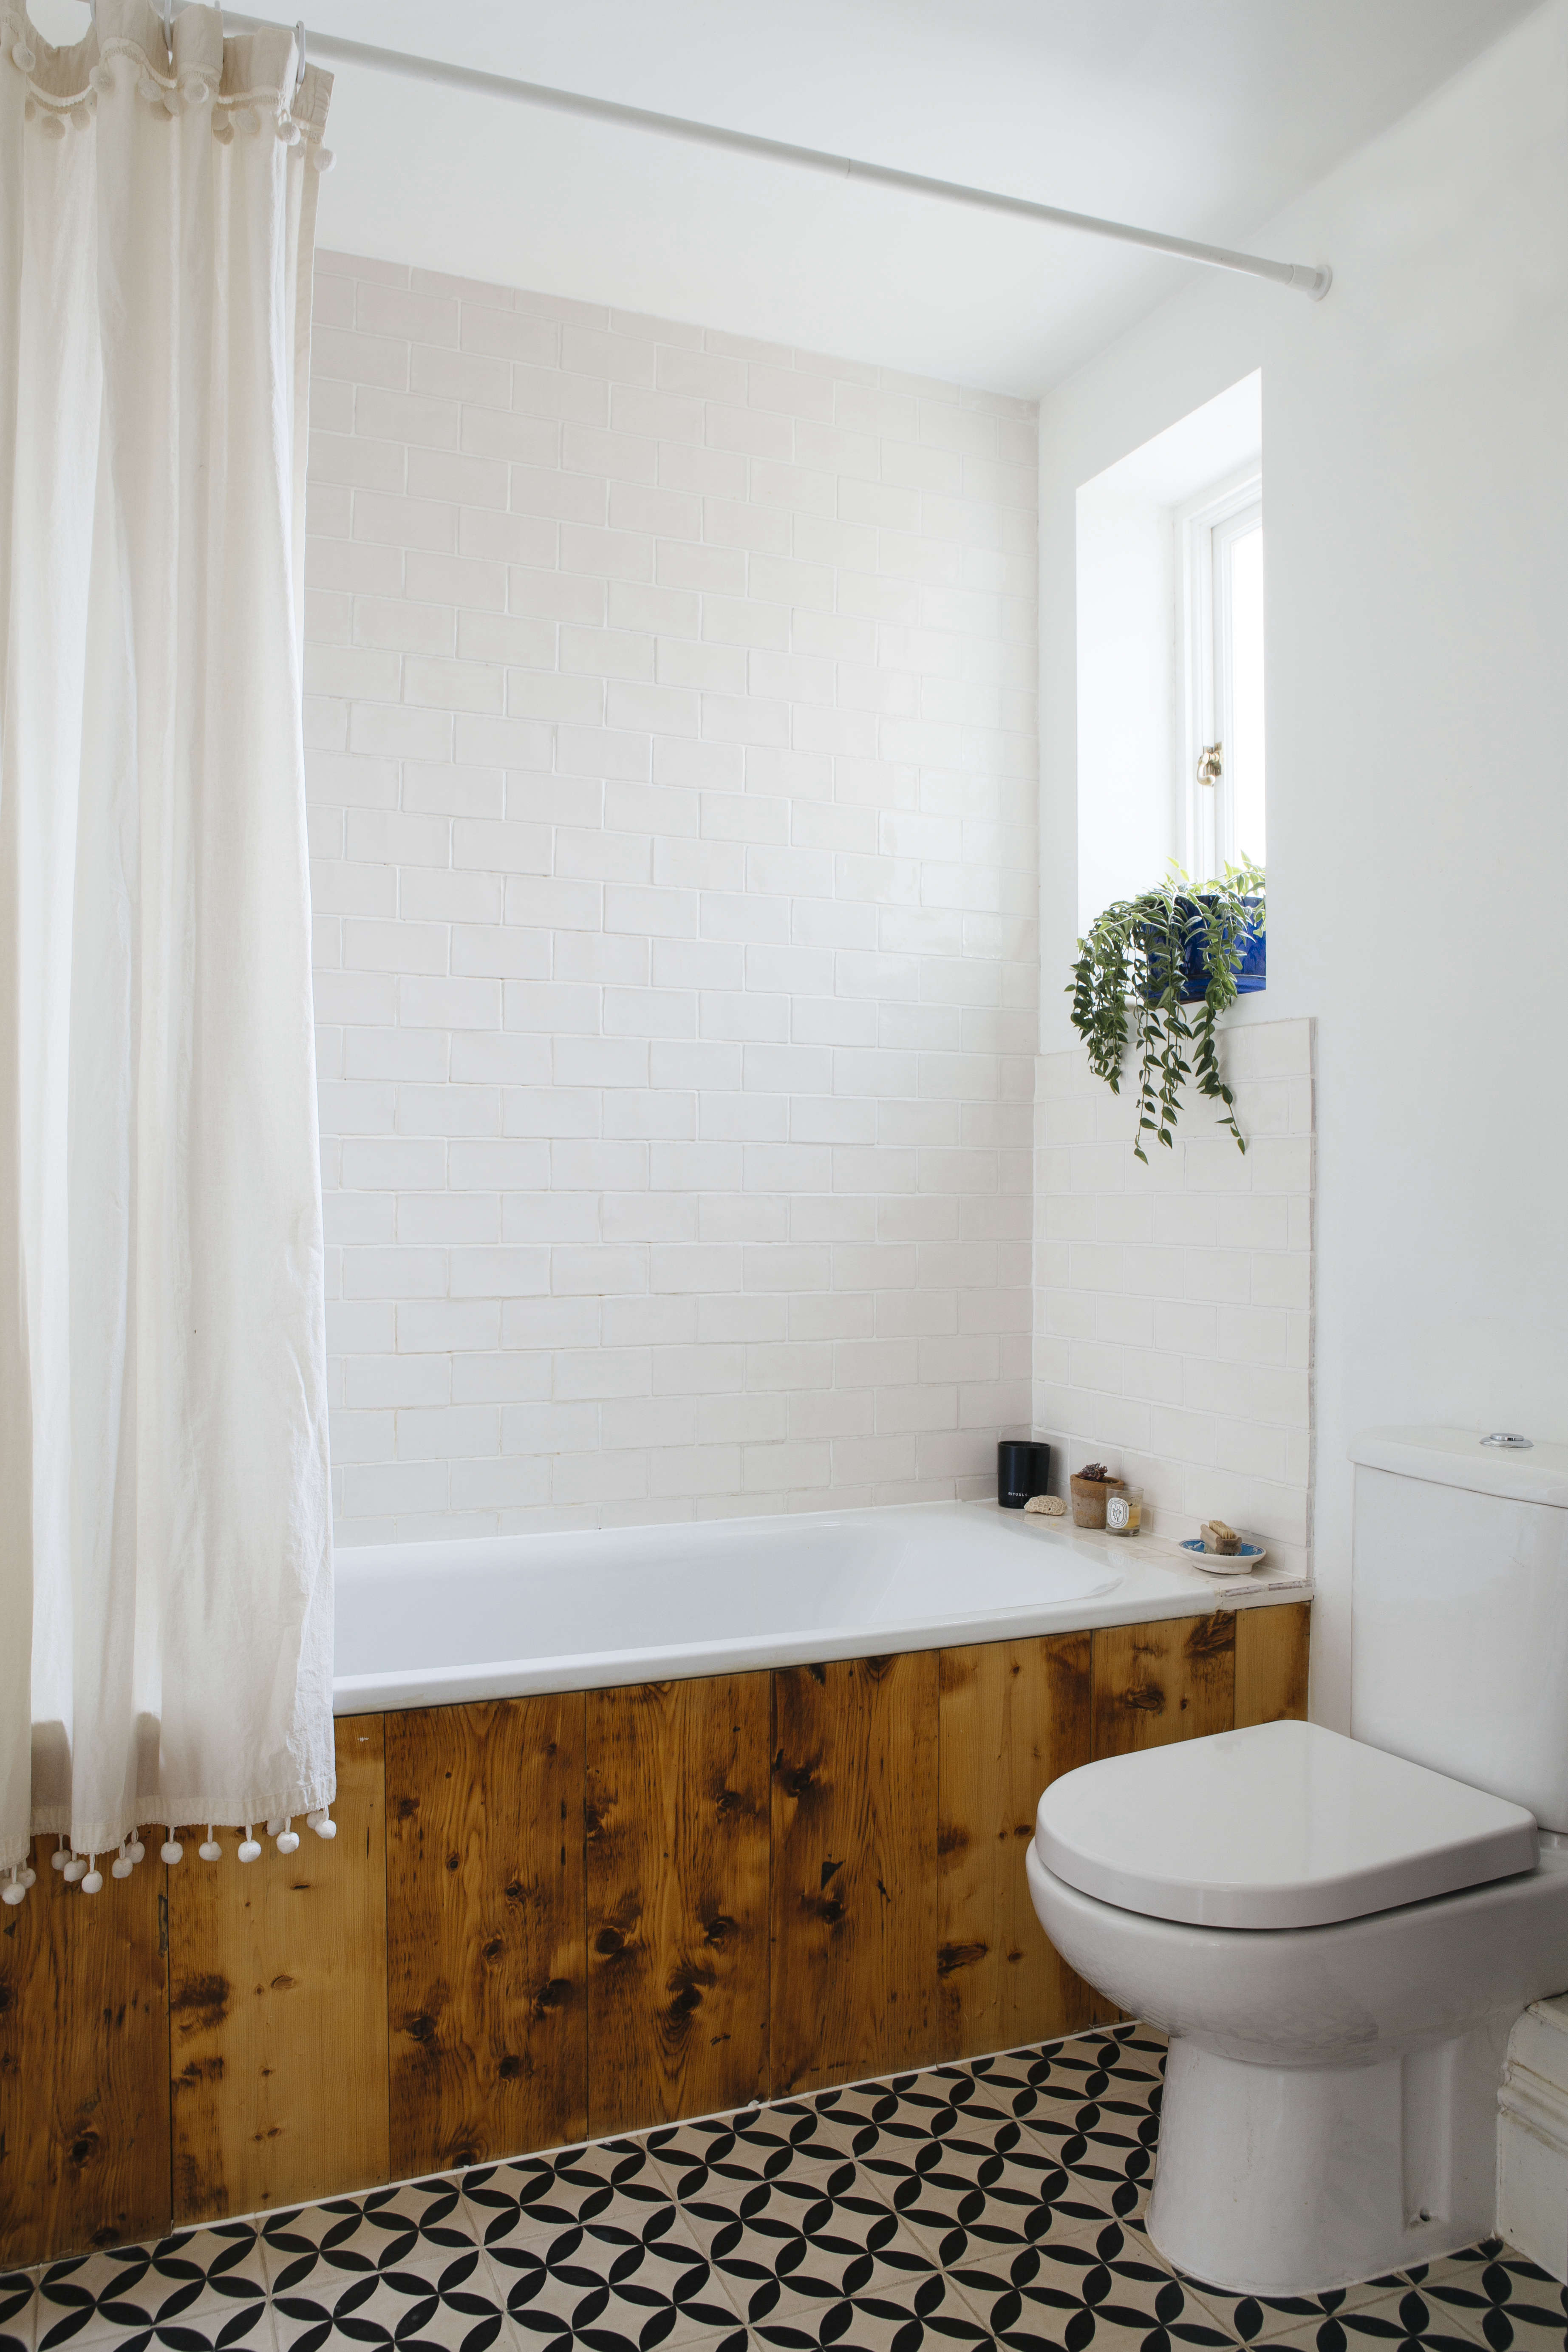 Ash moved a wall in the bathroom to create more space in the spare room and a built-in laundry cupboard in the hallway. The bath, where Ash carefully does all of her own indigo dying, has been paneled with the same reclaimed wood as the floor. (&#8